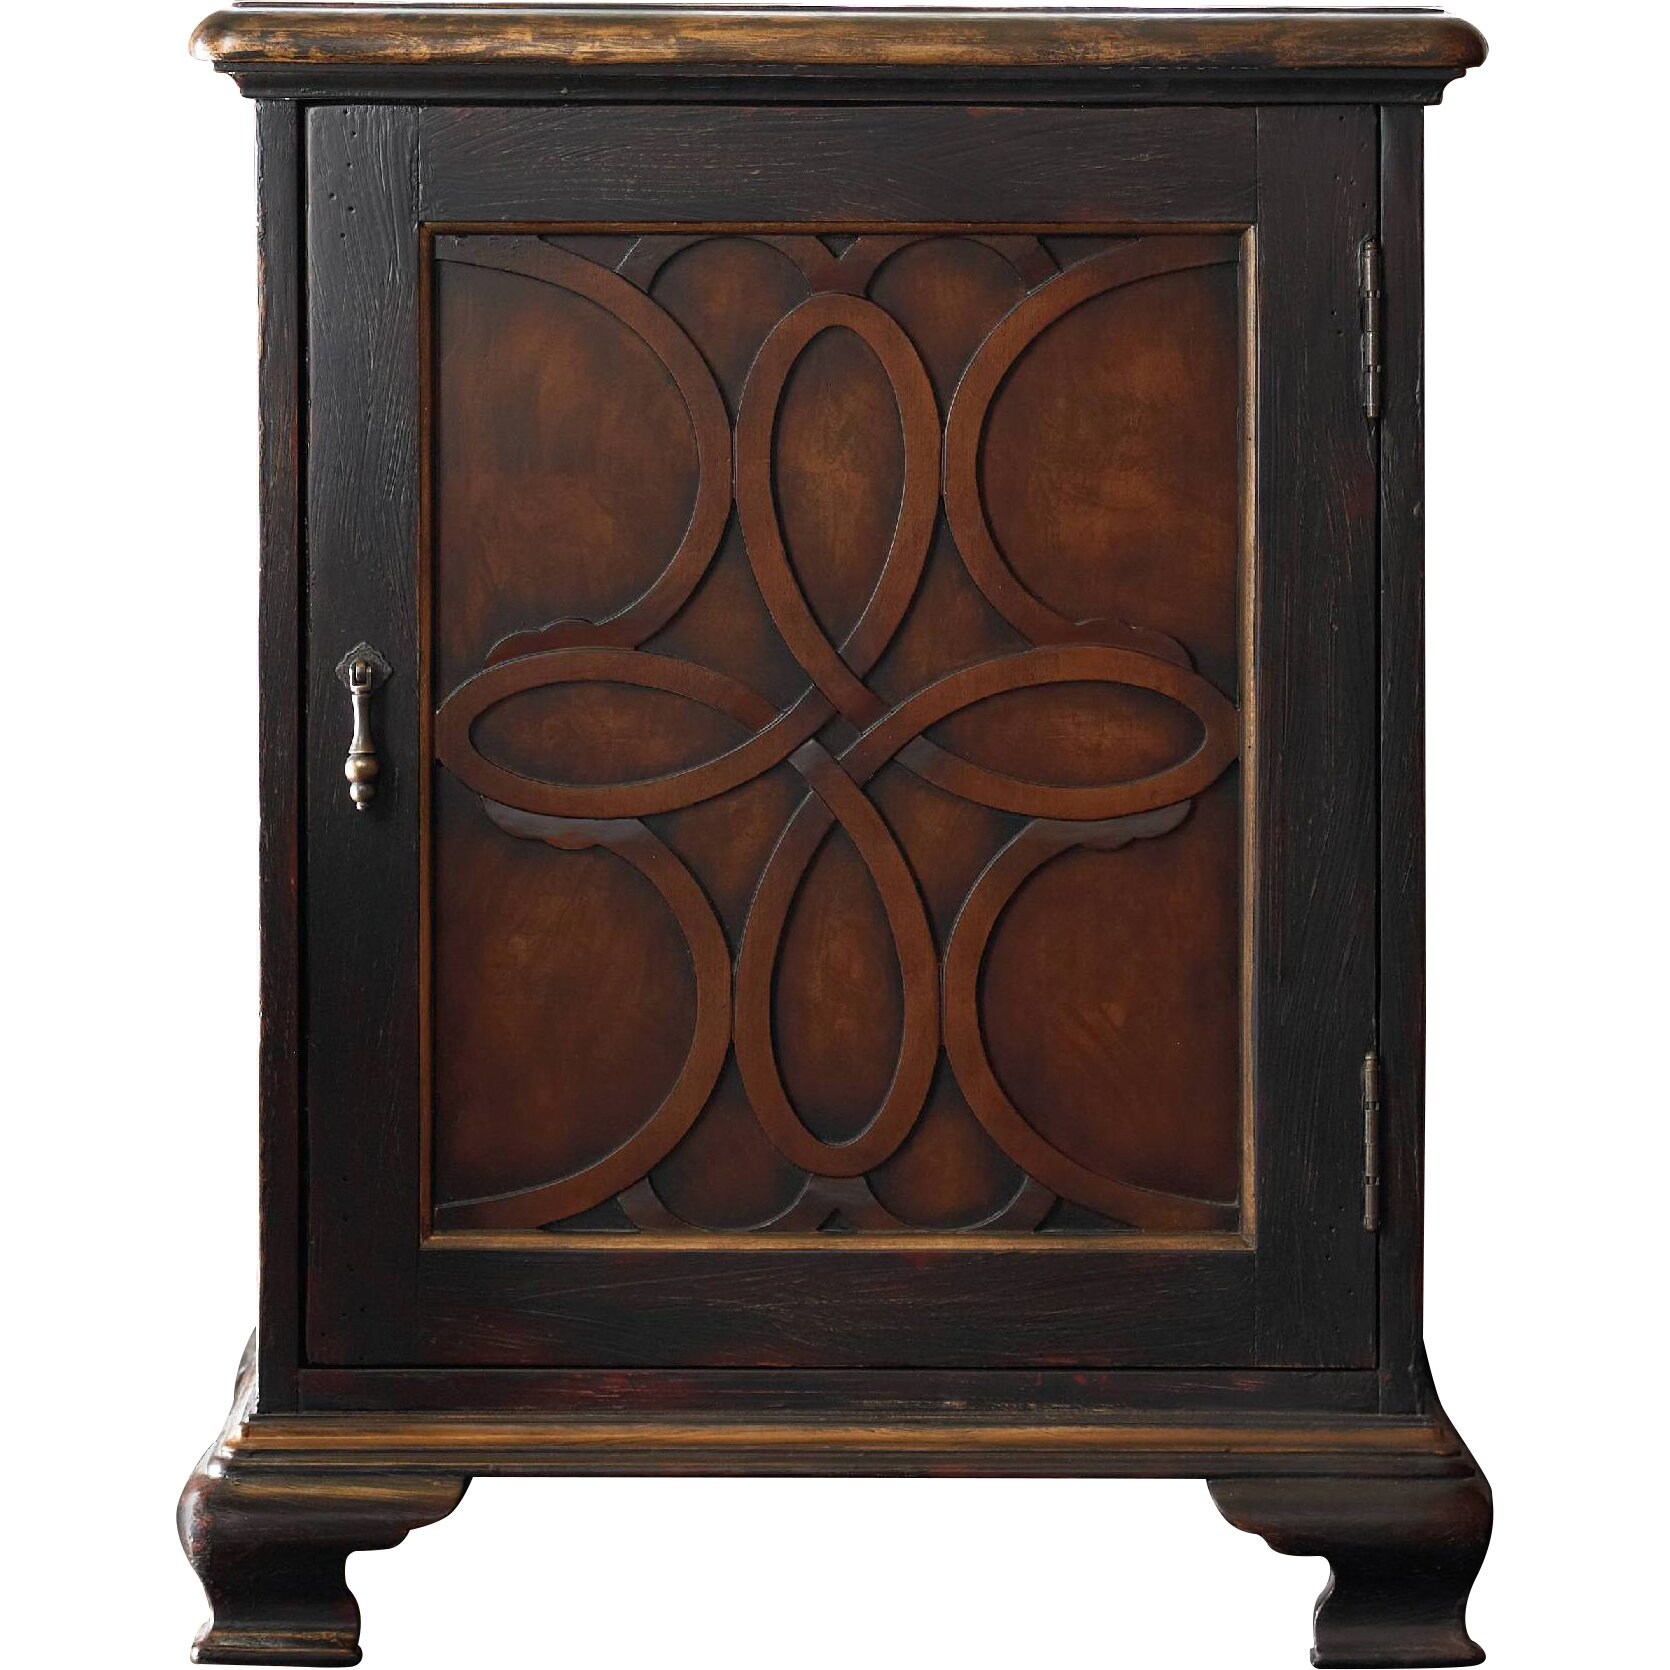 Hooker Furniture Bathroom Vanity: Hooker Furniture Seven Seas 1 Door Accent Cabinet